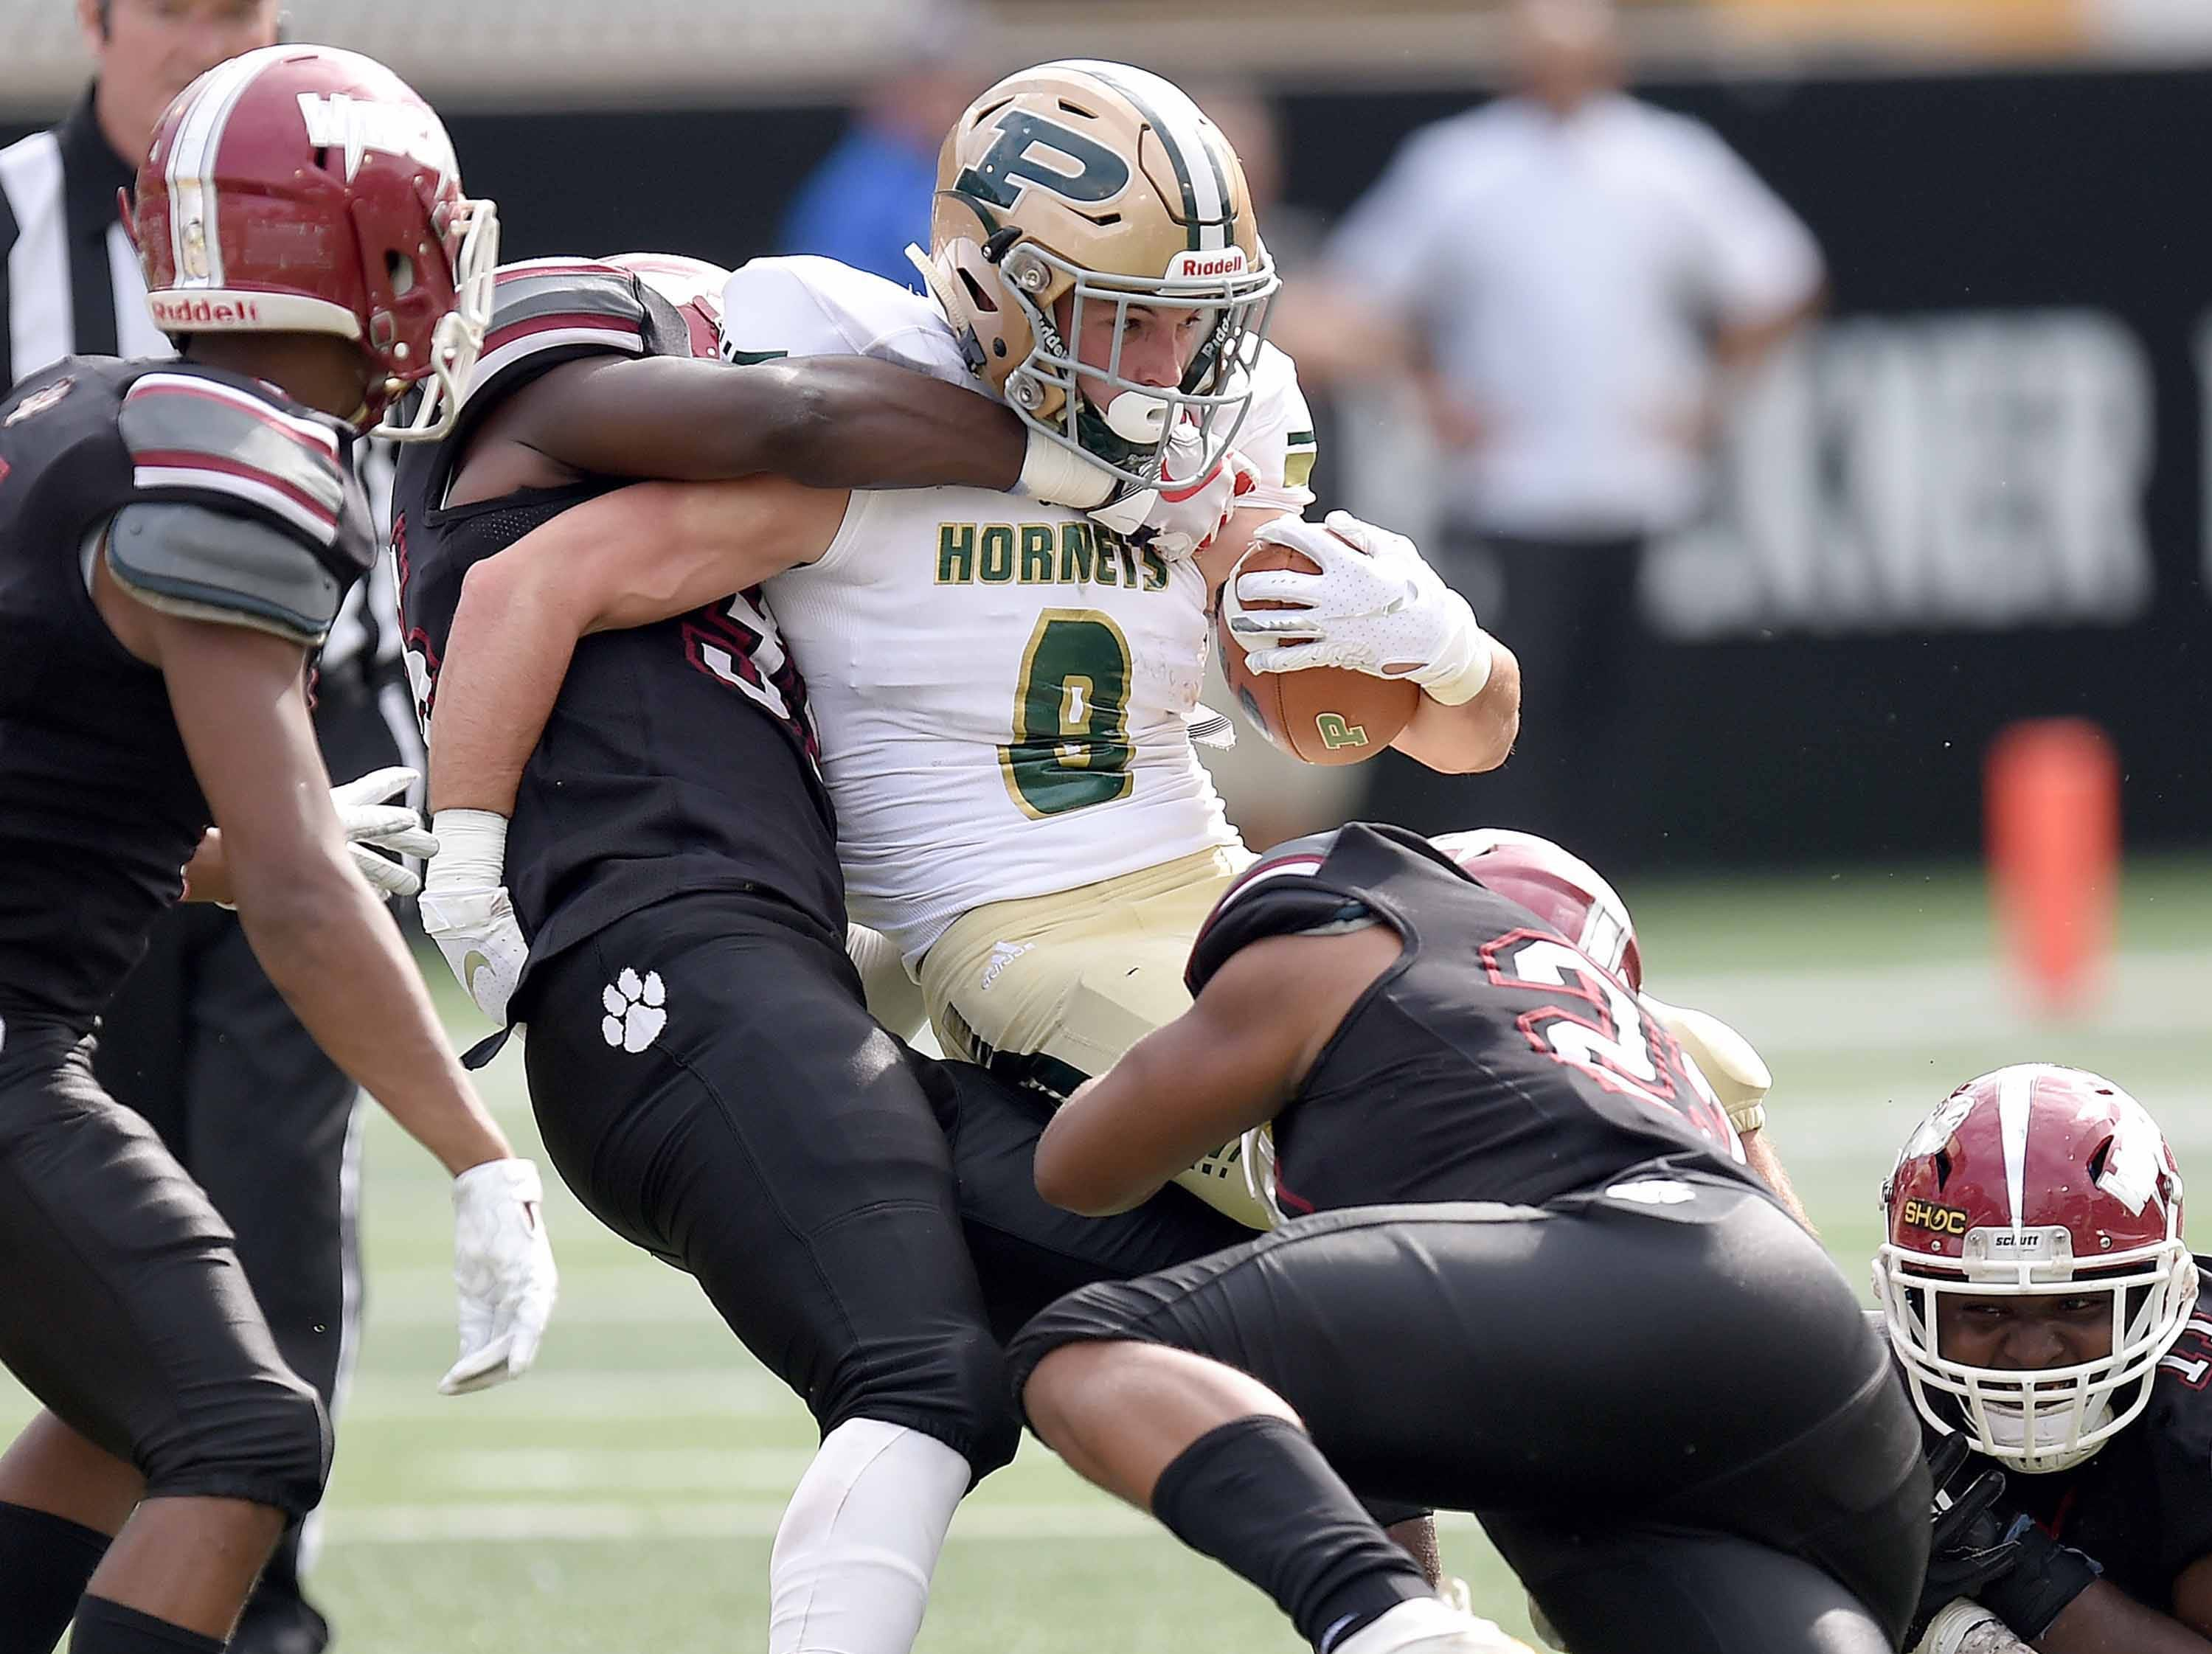 The Louisville defense gang tackle Poplarville's Tyson Holston (8) on Saturday, December 1, 2018, in the MHSAA BlueCross BlueShield Gridiron Classic High School Football Championships in M.M. Roberts Stadium on the University of Southern Mississippi campus in Hattiesburg, Miss.